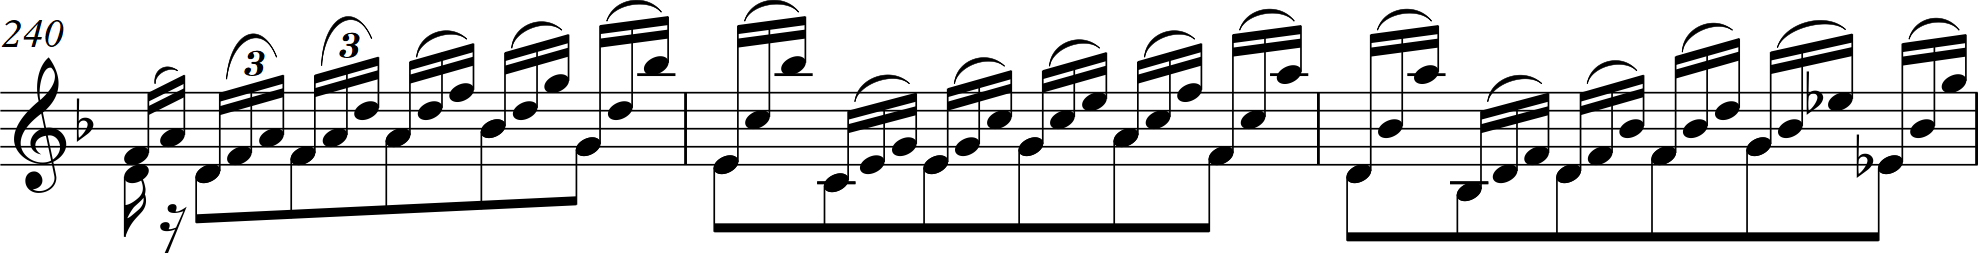 Файл:Bach Chaconne 2 0001 (2).png